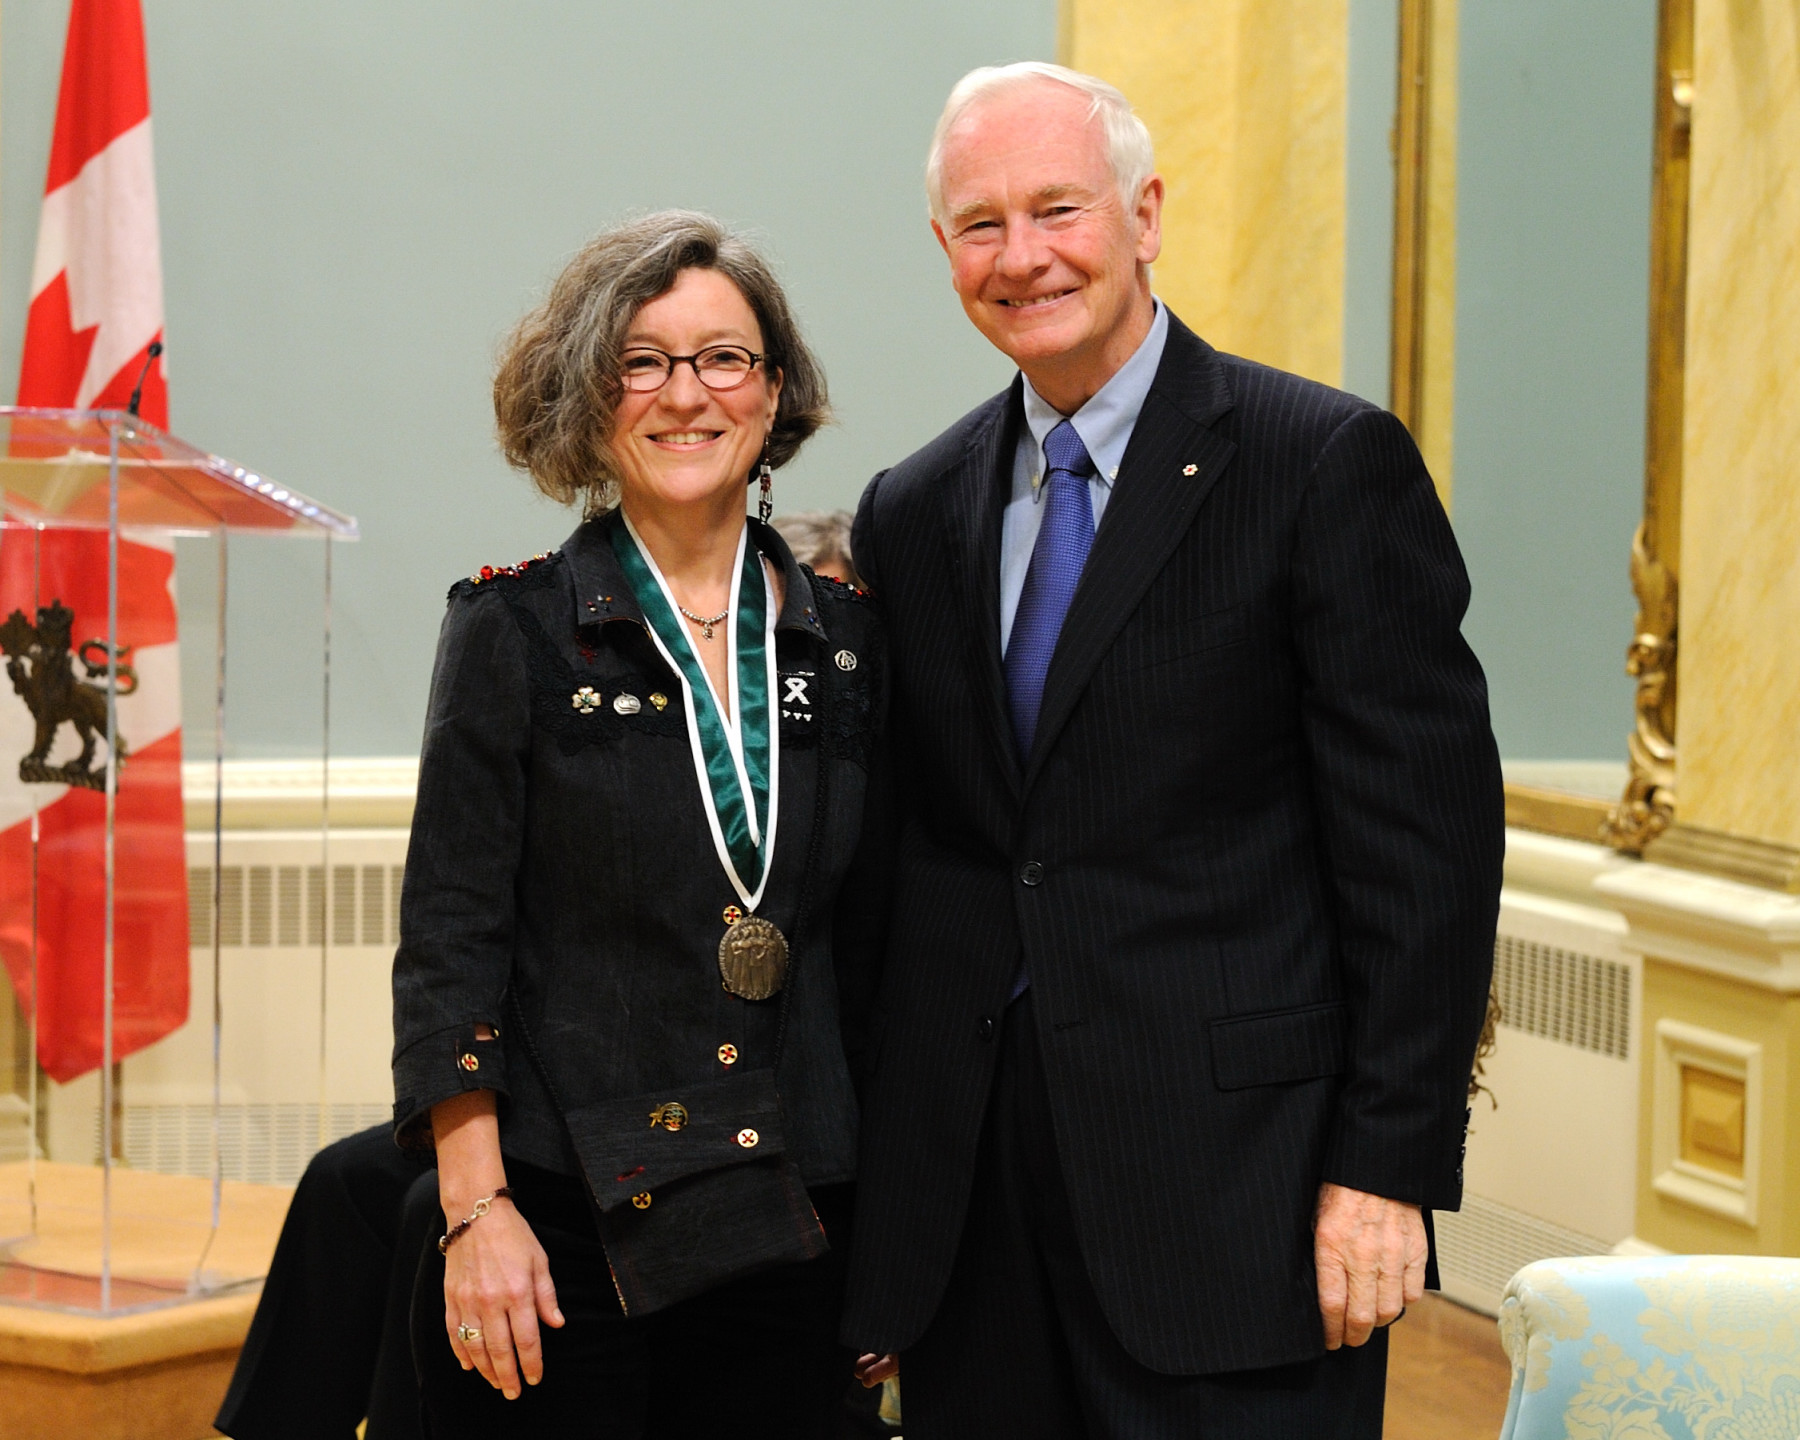 Ms. Anne Michaud from Montréal, Quebec, received the 2010 Governor General's Awards in Commemoration of the Persons Case. In 2002, Ms. Michaud co-created Women in Cities International, a network that promotes the dissemination of knowledge and best practices regarding women's safety and gender equality in urban settings.